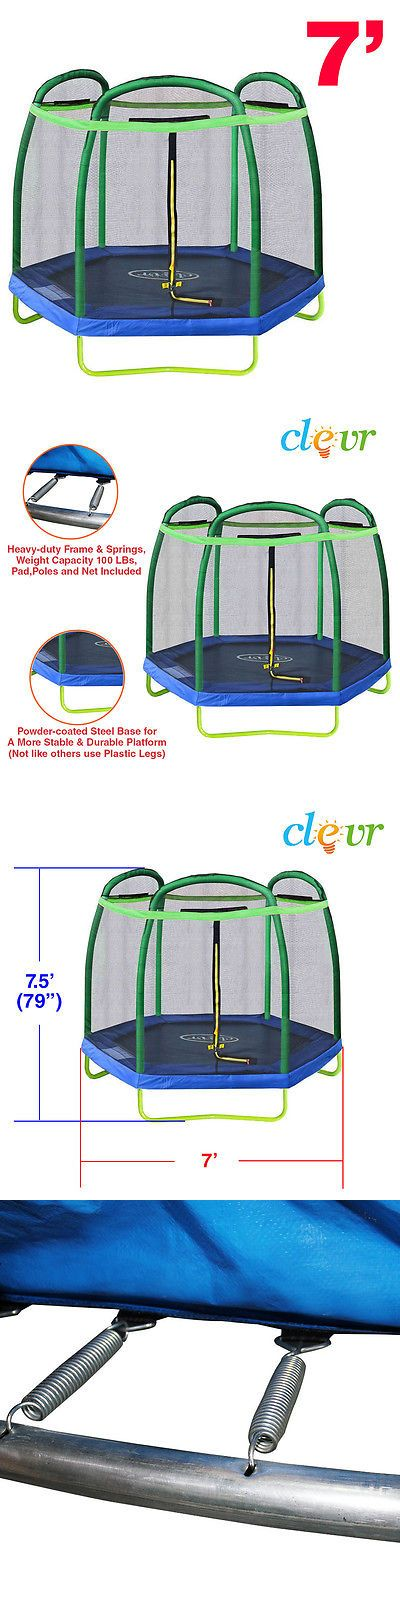 Trampolines 57275: New Clevr 7Ft Trampoline With Safety Enclosure Bounce Jump Net Spring Pad Round -> BUY IT NOW ONLY: $144.99 on eBay!